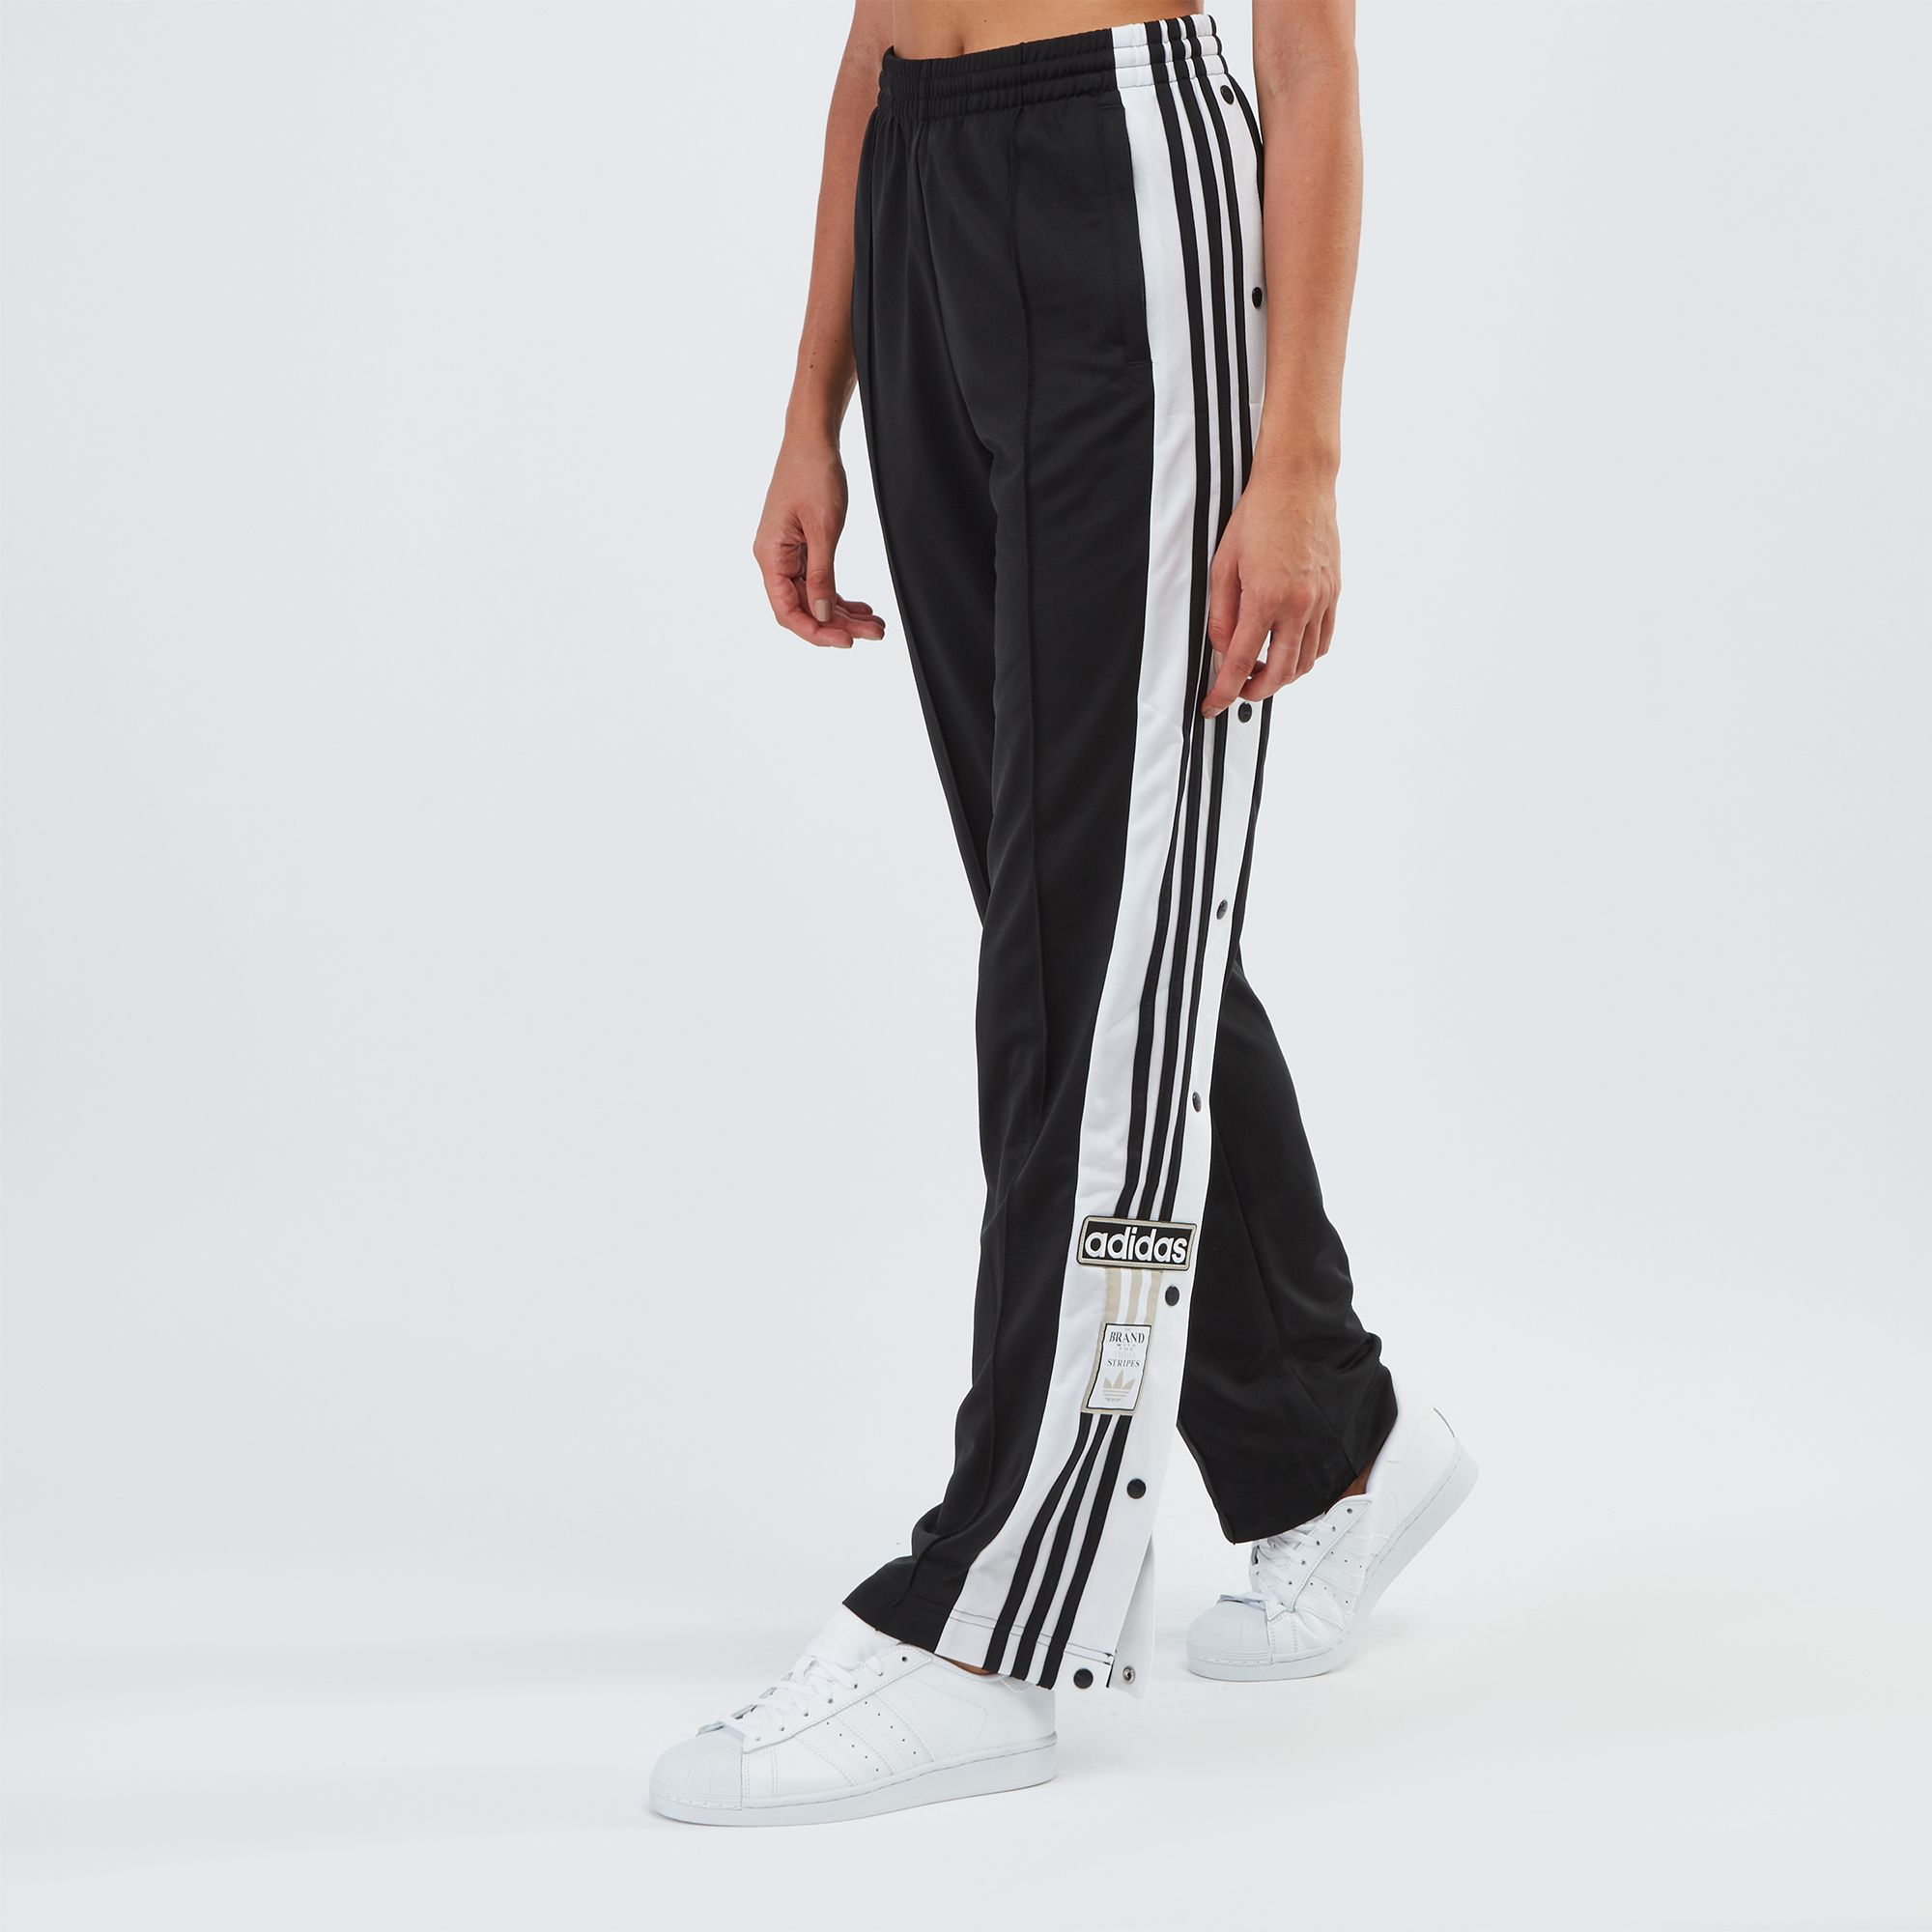 adidas Originals adibreak Track Pants